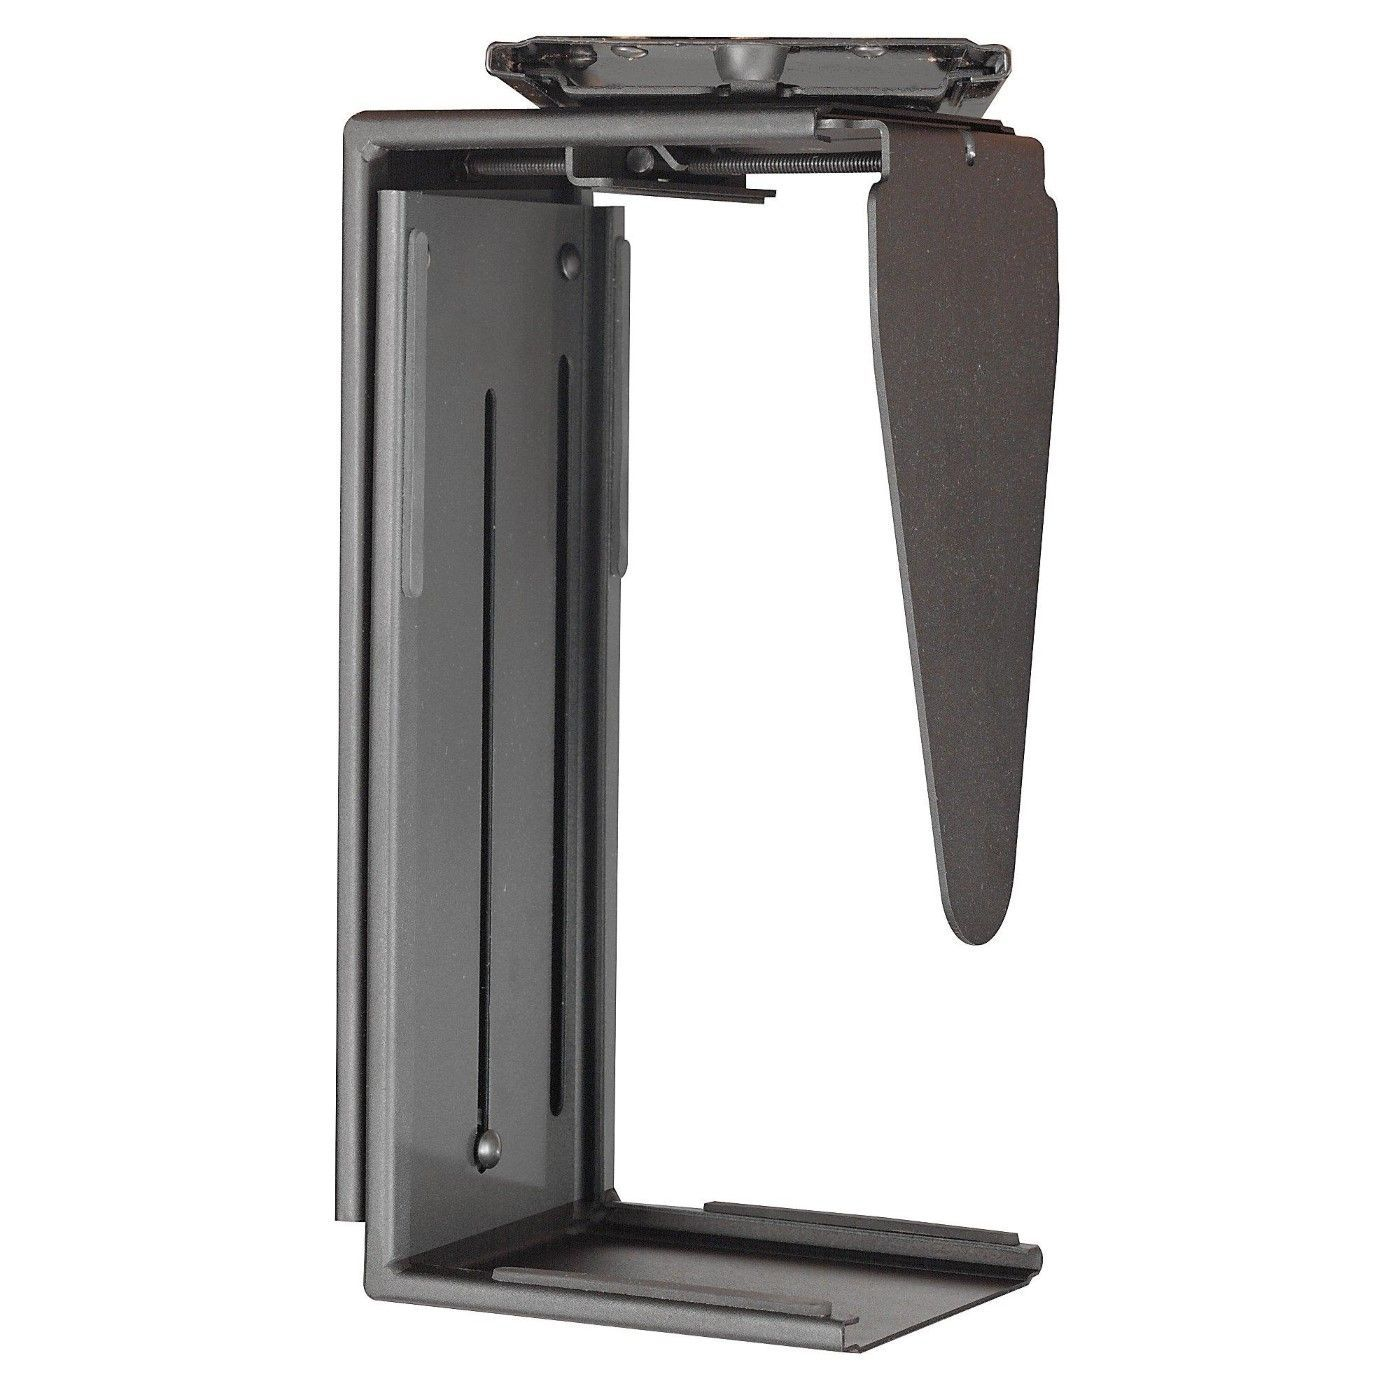 <font color=#c60><b>BUSH BUSINESS FURNITURE CPU HOLDER. FREE SHIPPING</font></b>